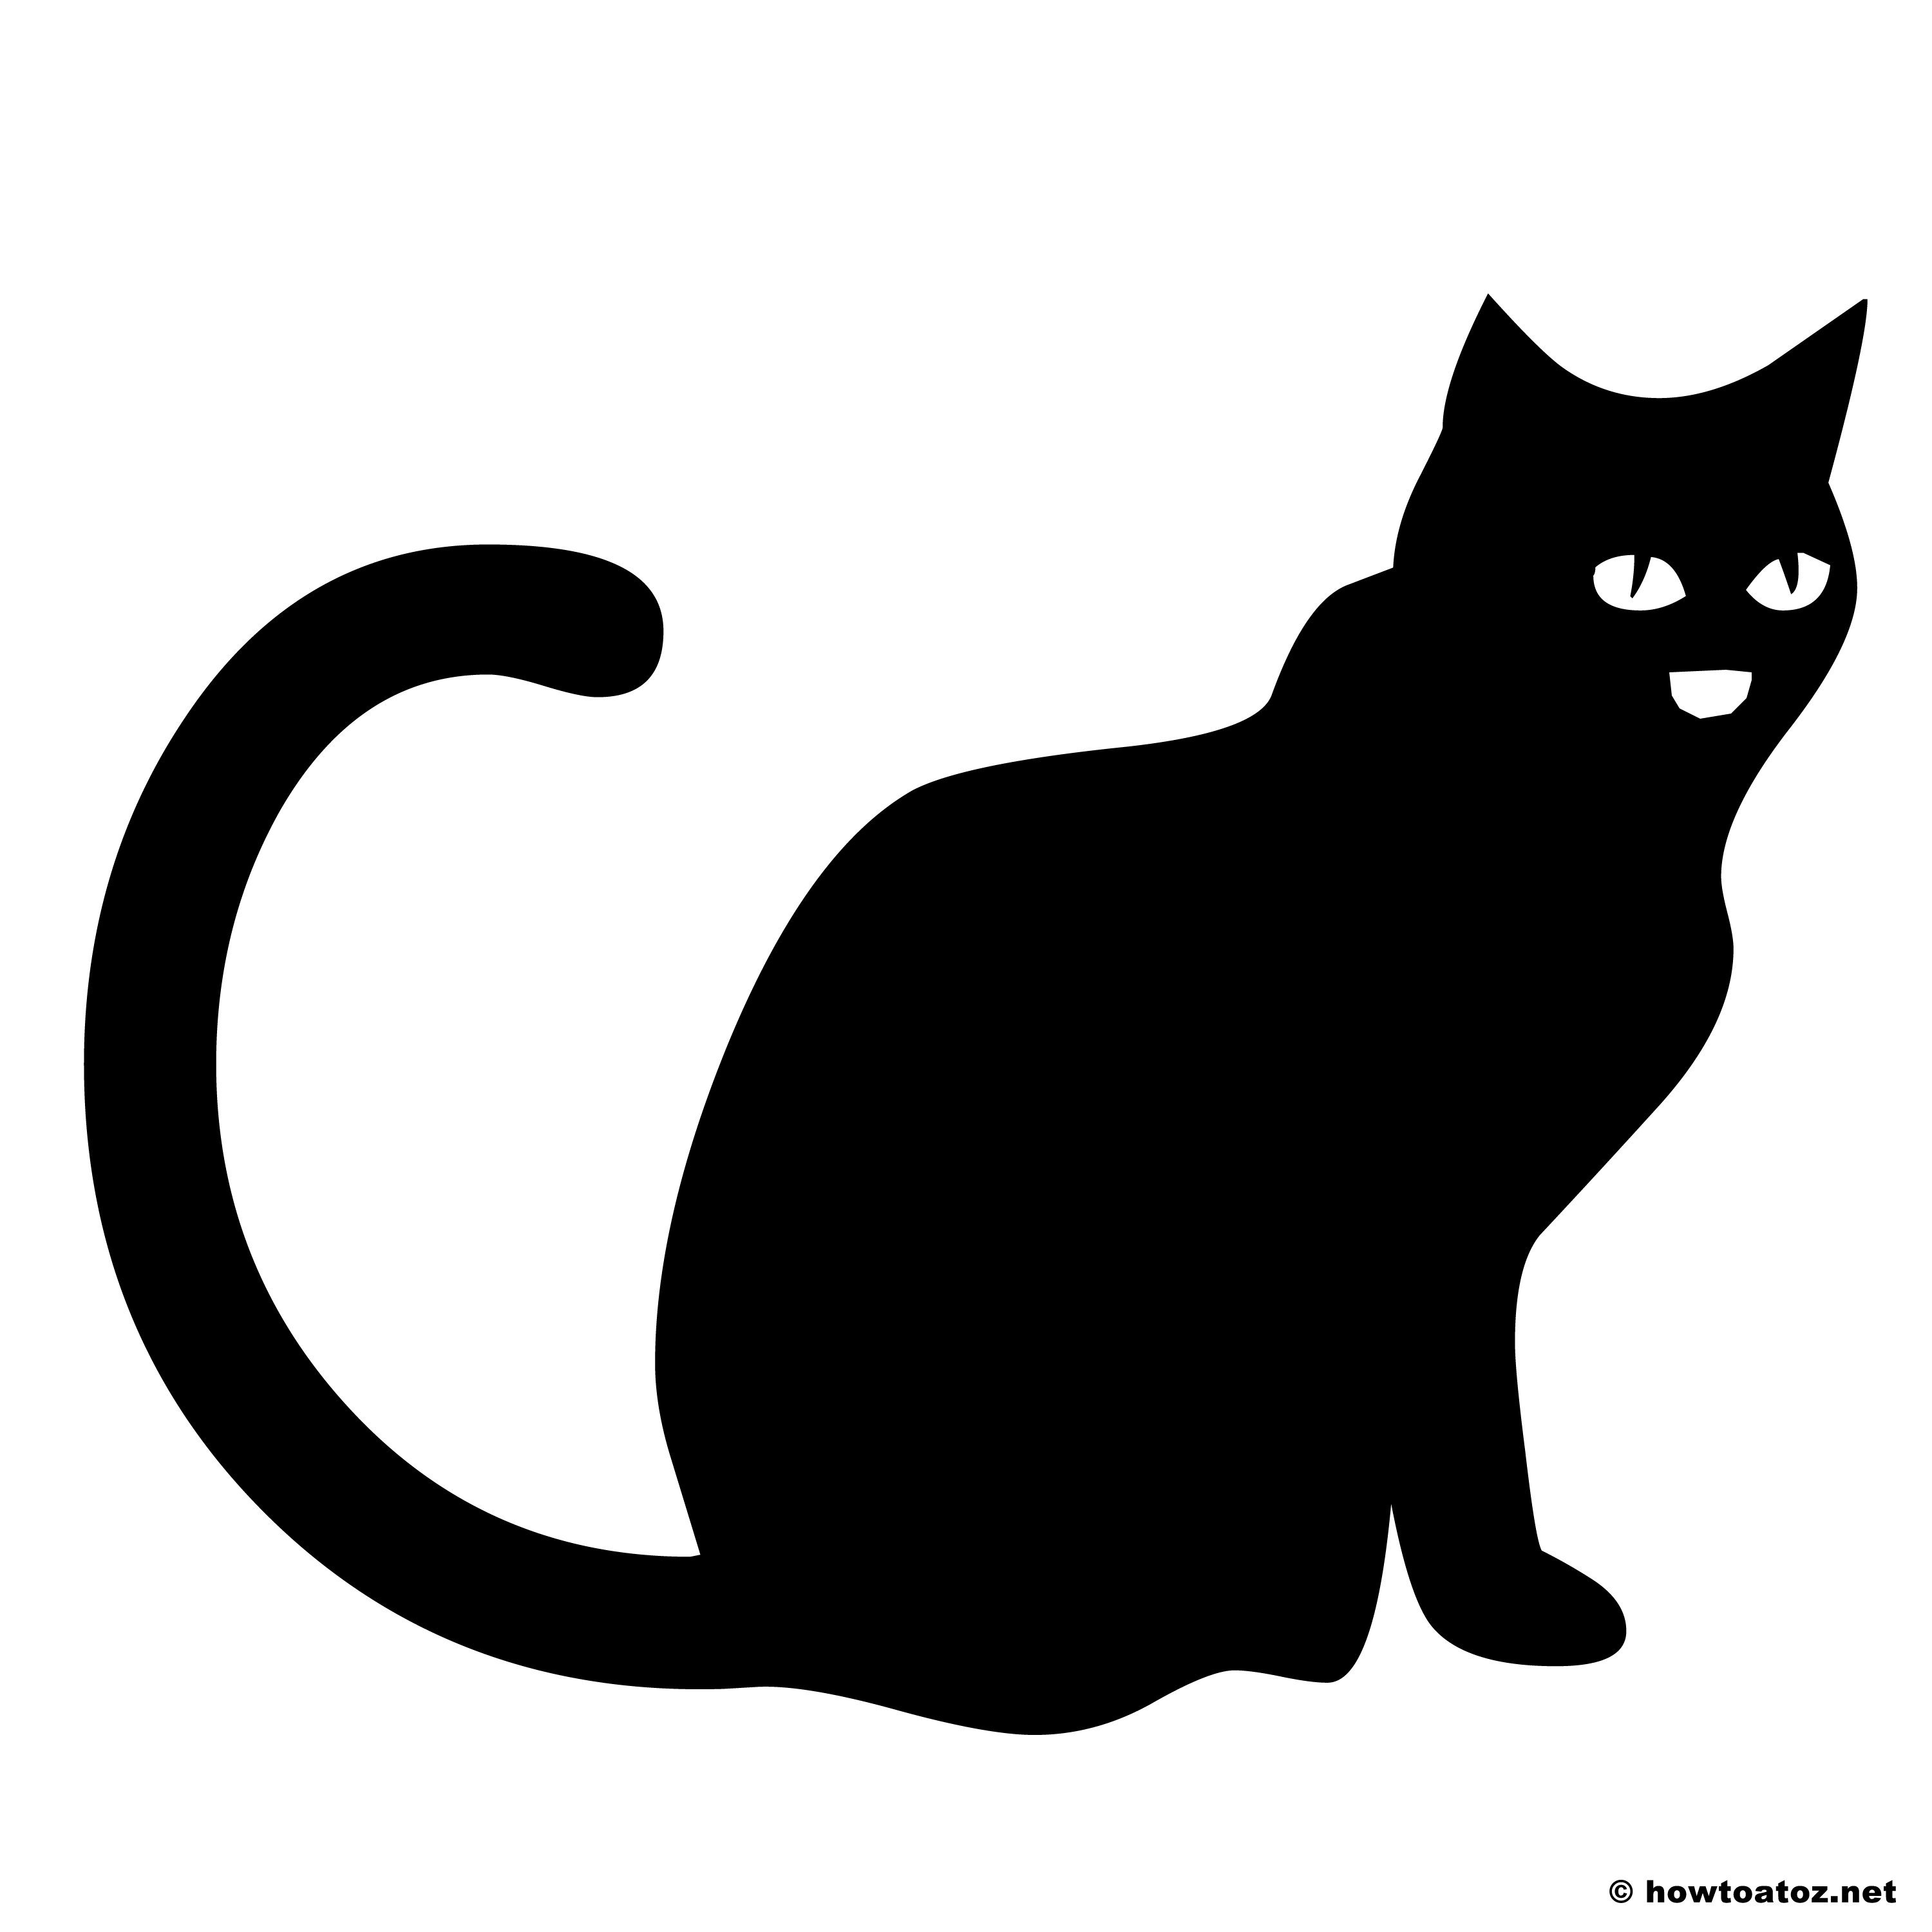 Halloween decoration stencils and templates vol 2 how to for Black cat templates for halloween